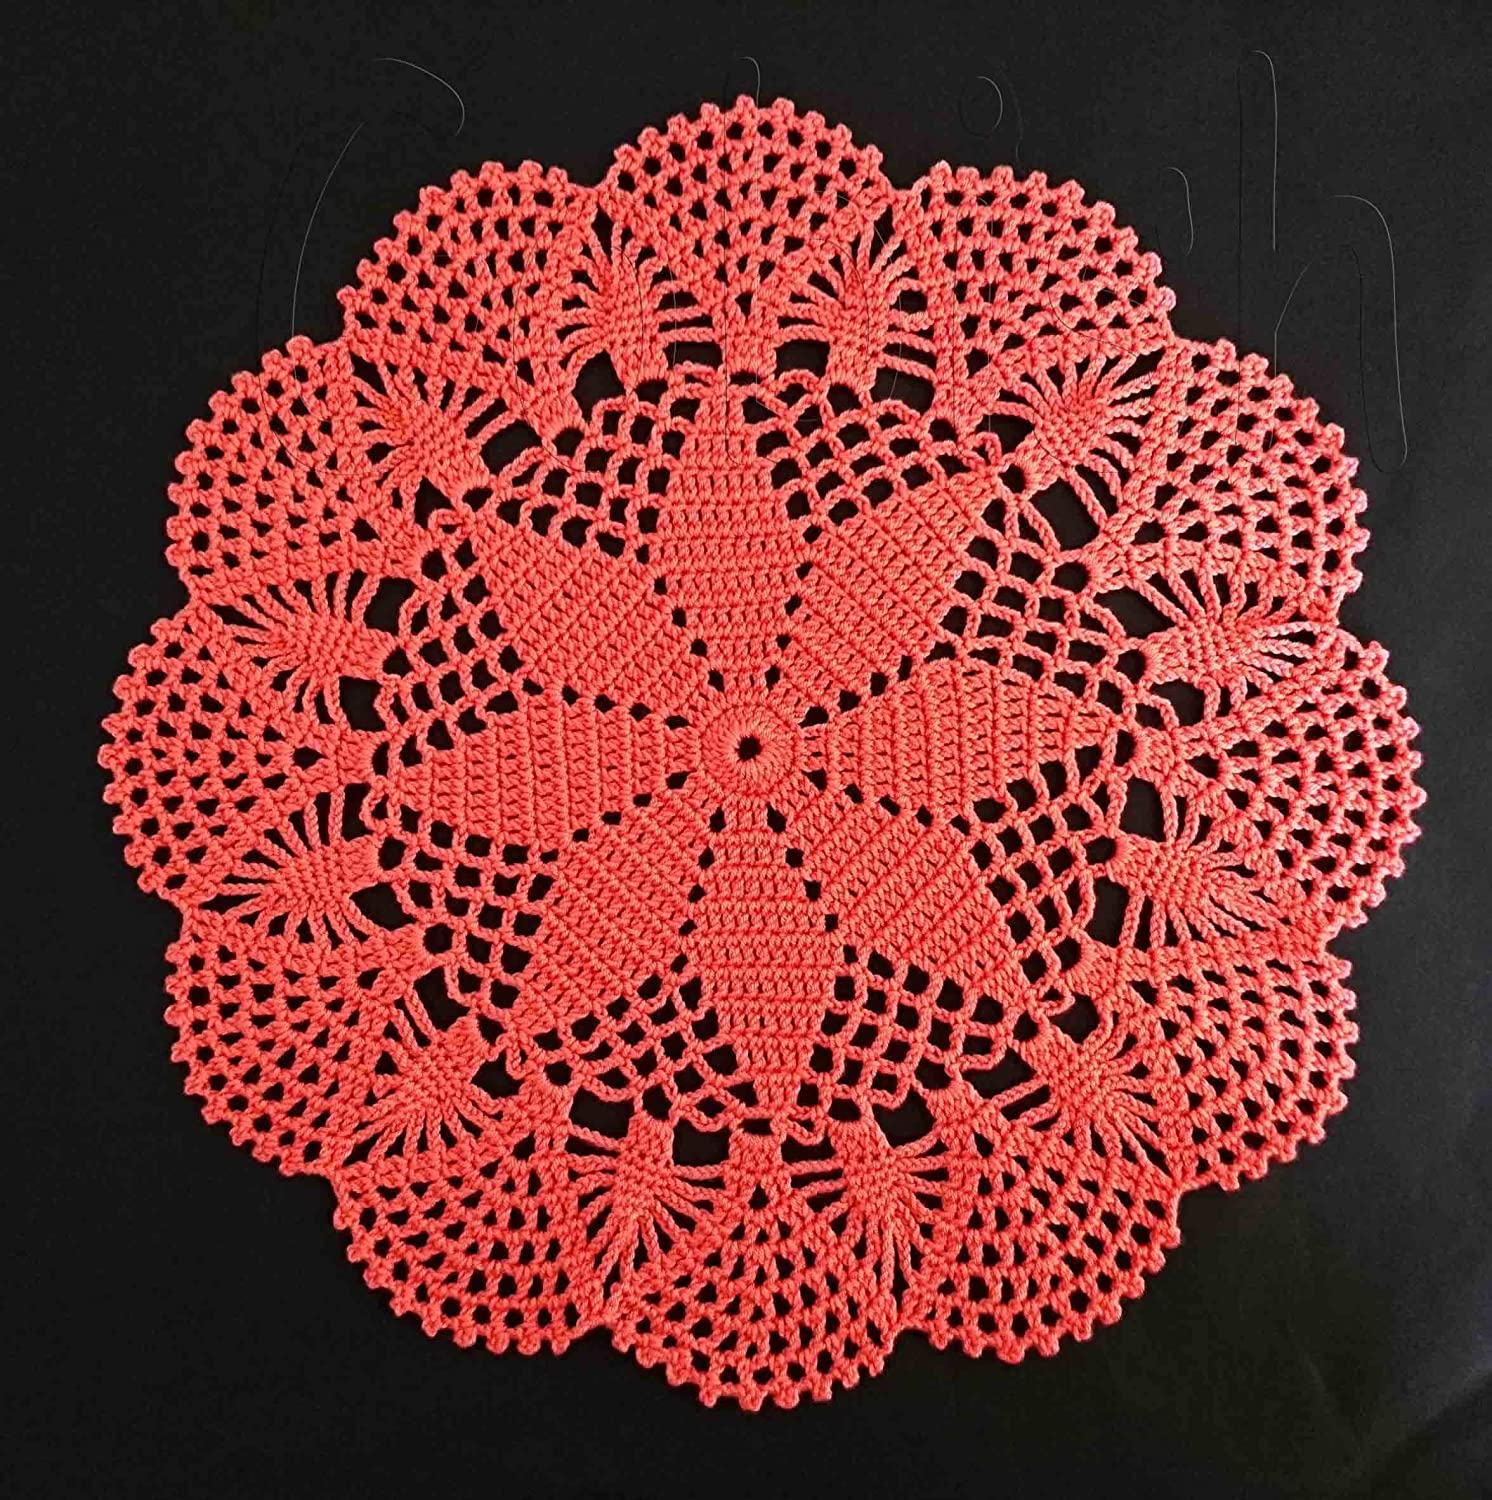 25% OFF Handmade Crocheted Doily Tablecloth trend rank placemats doilies Round